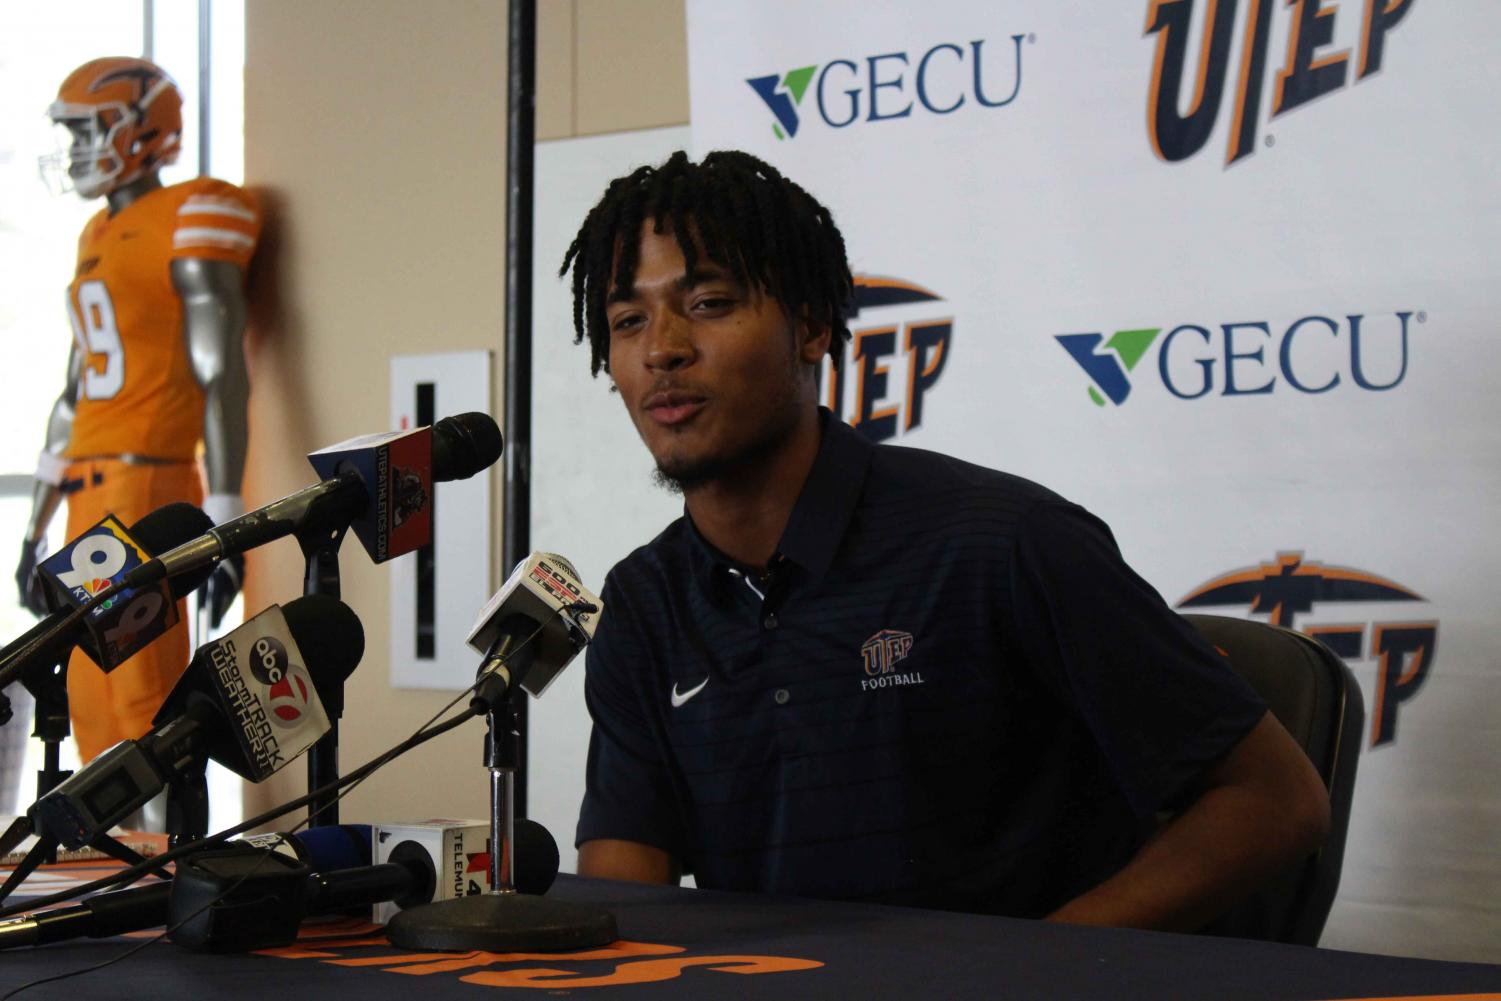 Freshman+quarterback+TJ+Goodwin+was+introduced+on+National+Signing+Day+as+part+of+the+2019+UTEP+football+recruiting+class.+